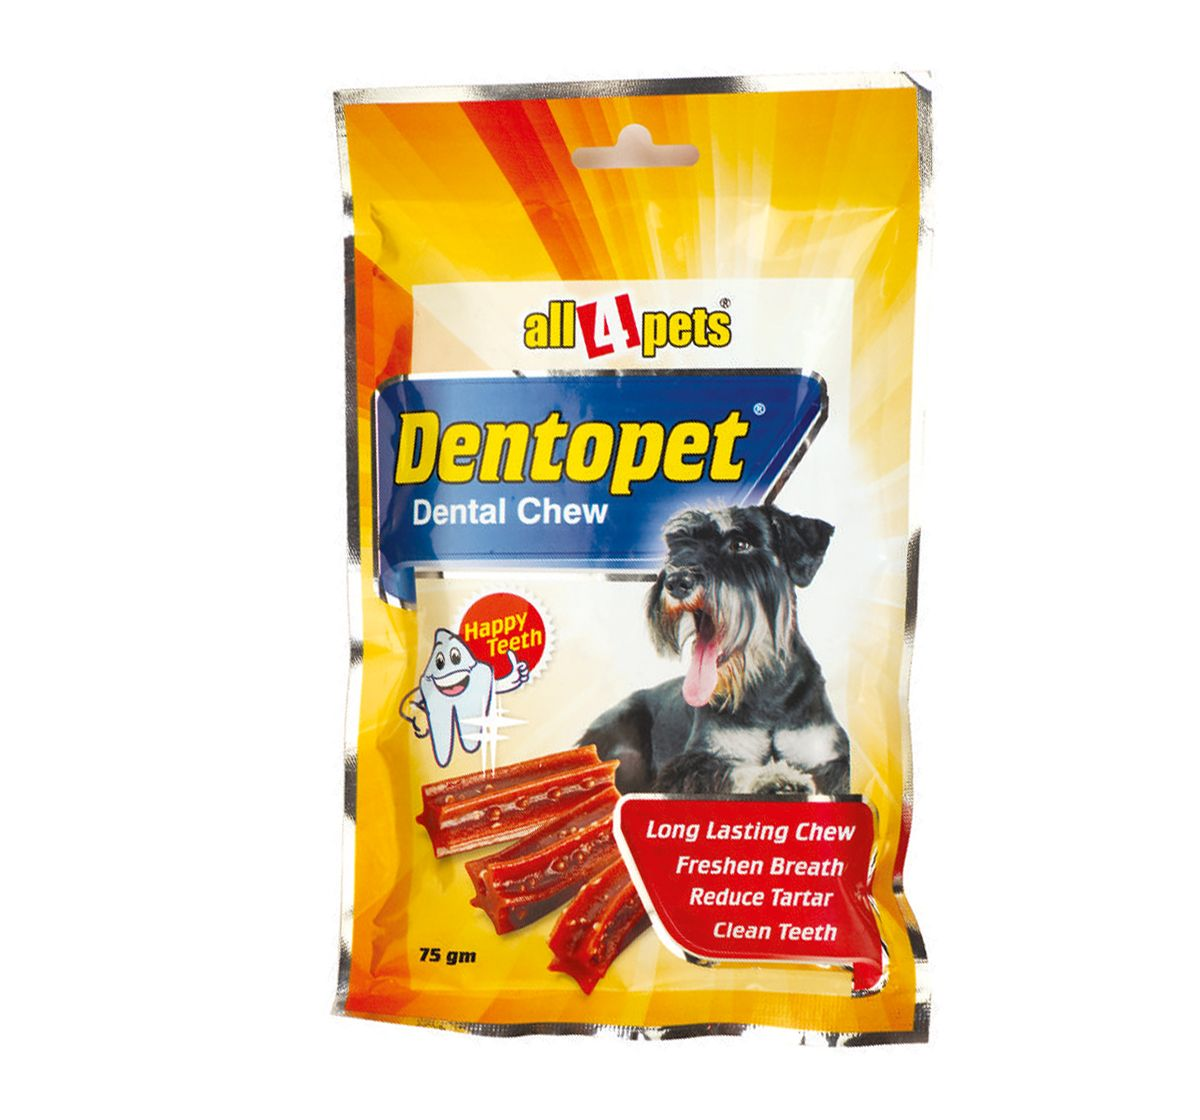 Dog Chew Dentopet 75 Gm Giving Your Pet A Cleaner Teeth And